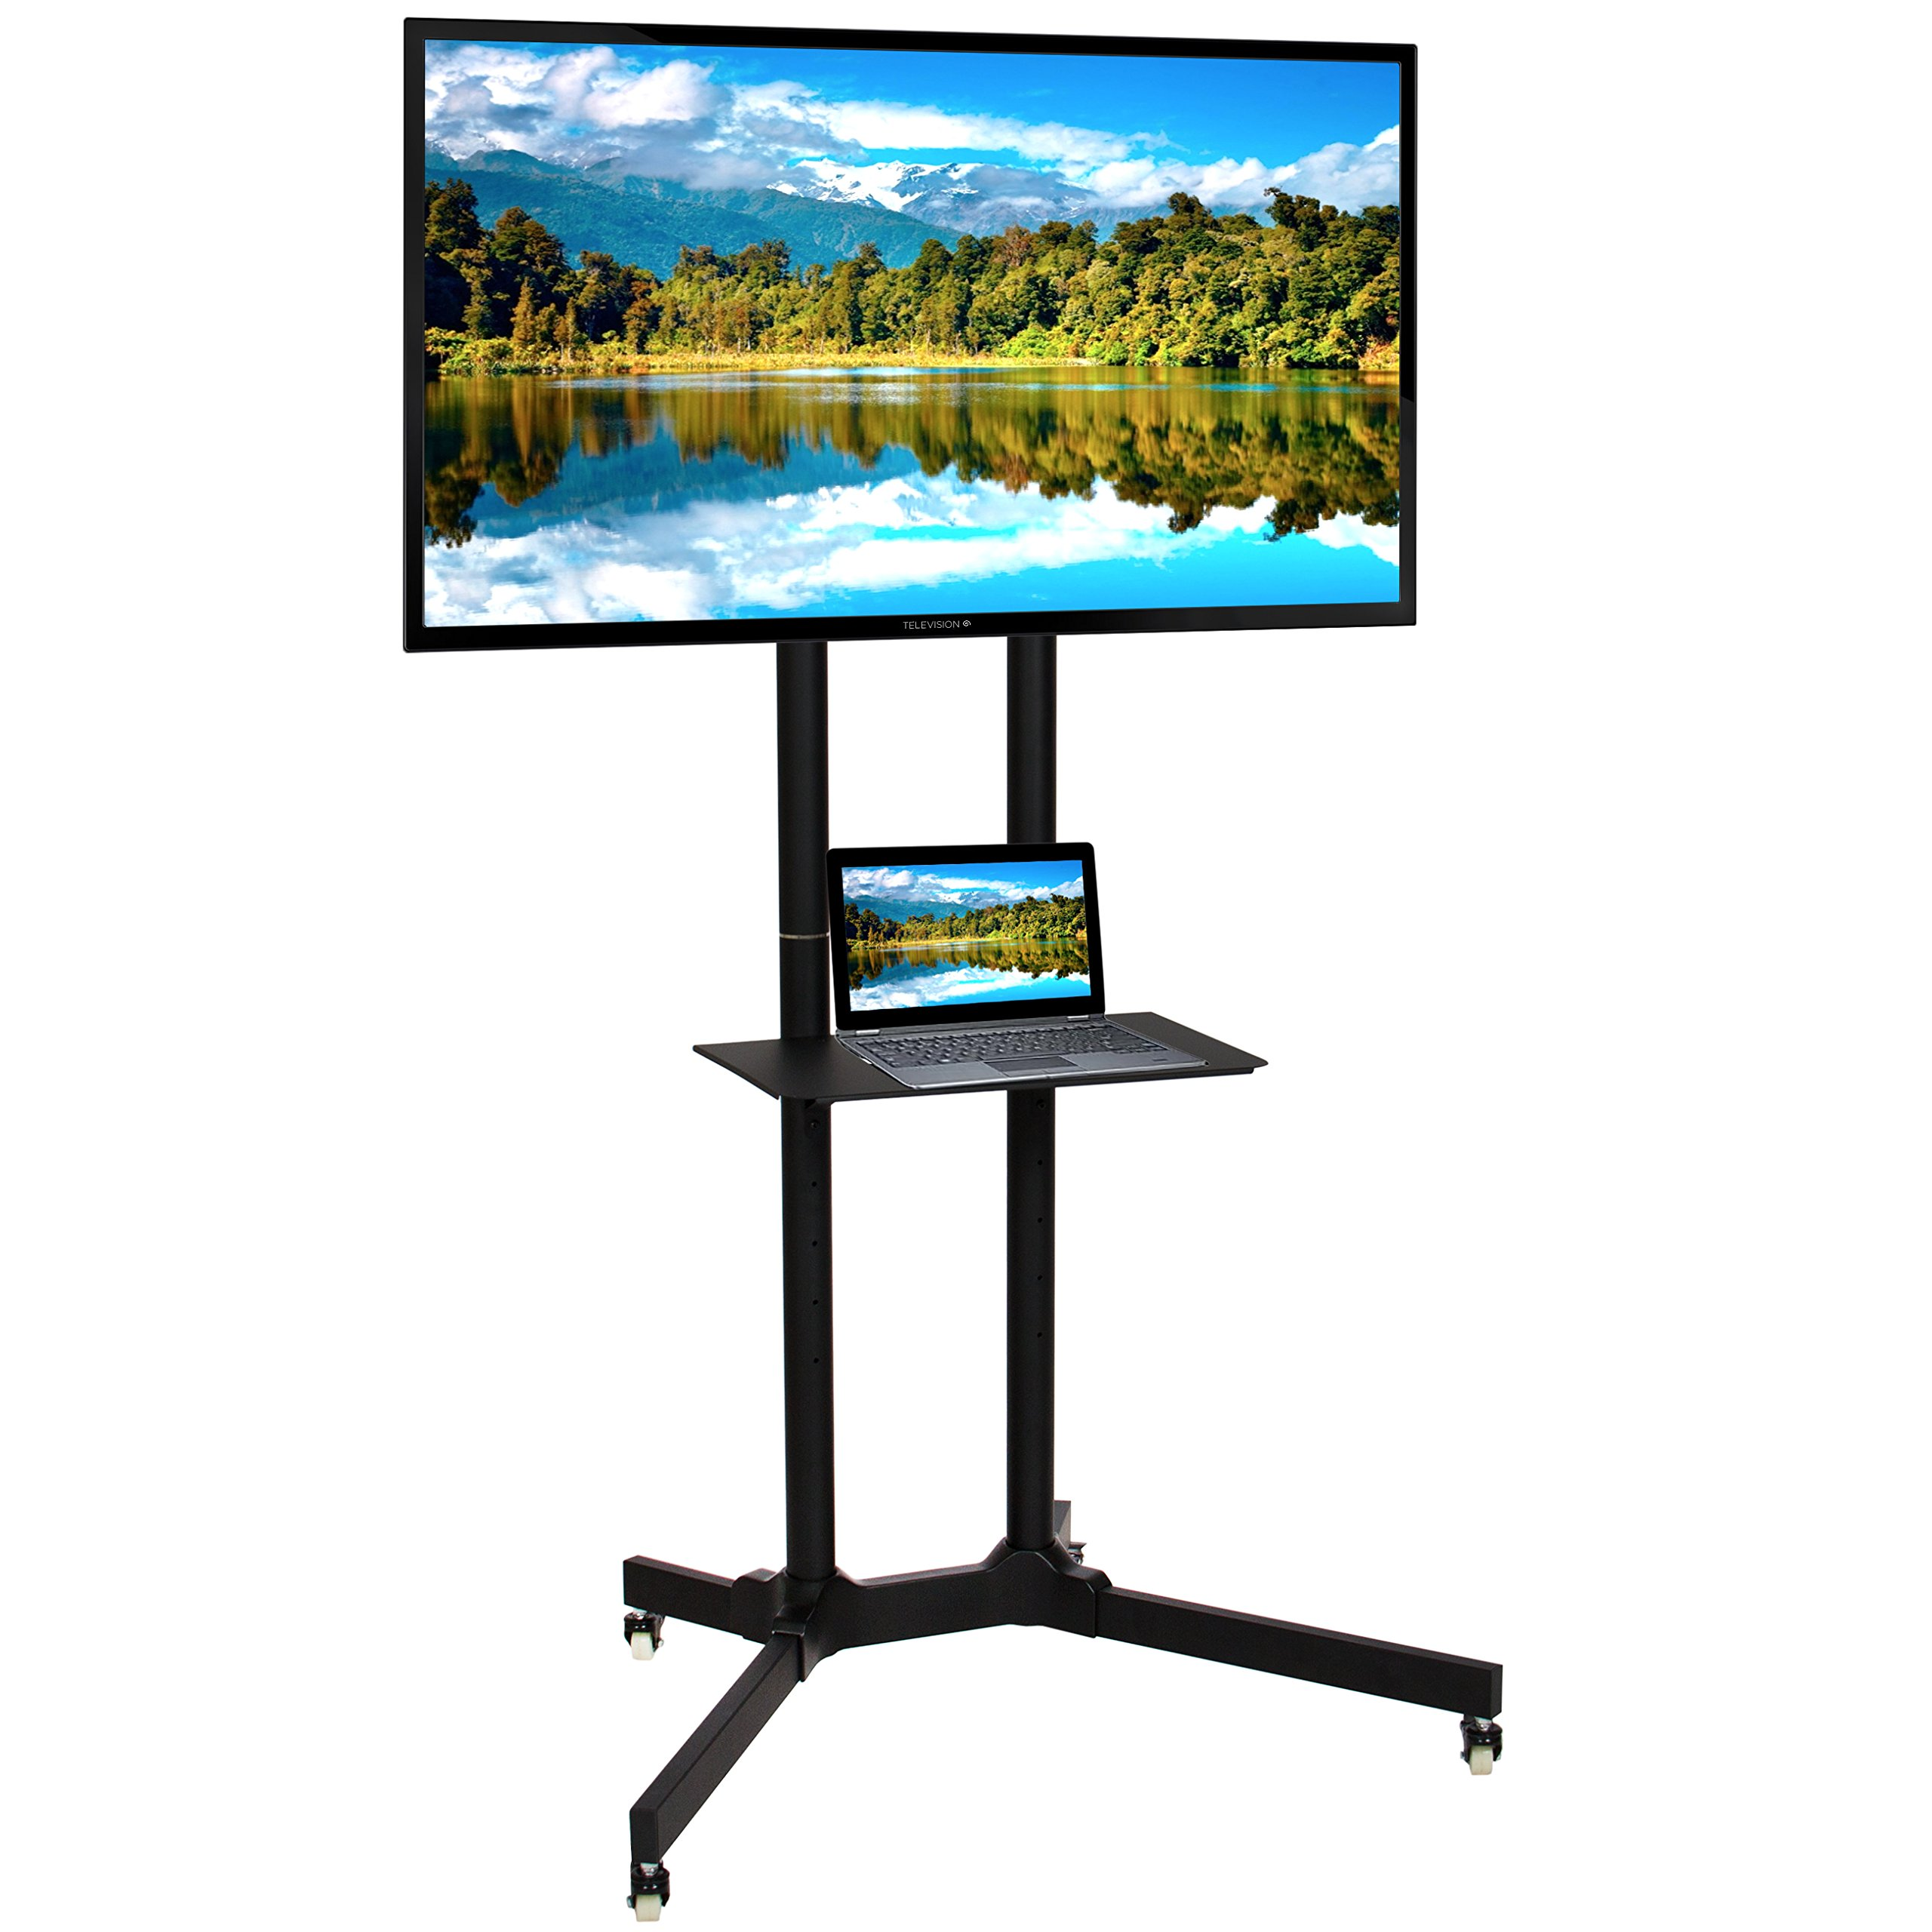 Best Choice Products Flat Panel Steel TV Stand Mobile TV Cart W/Lockable Wheels, 32''-65'' Screen LCD LED Plasma